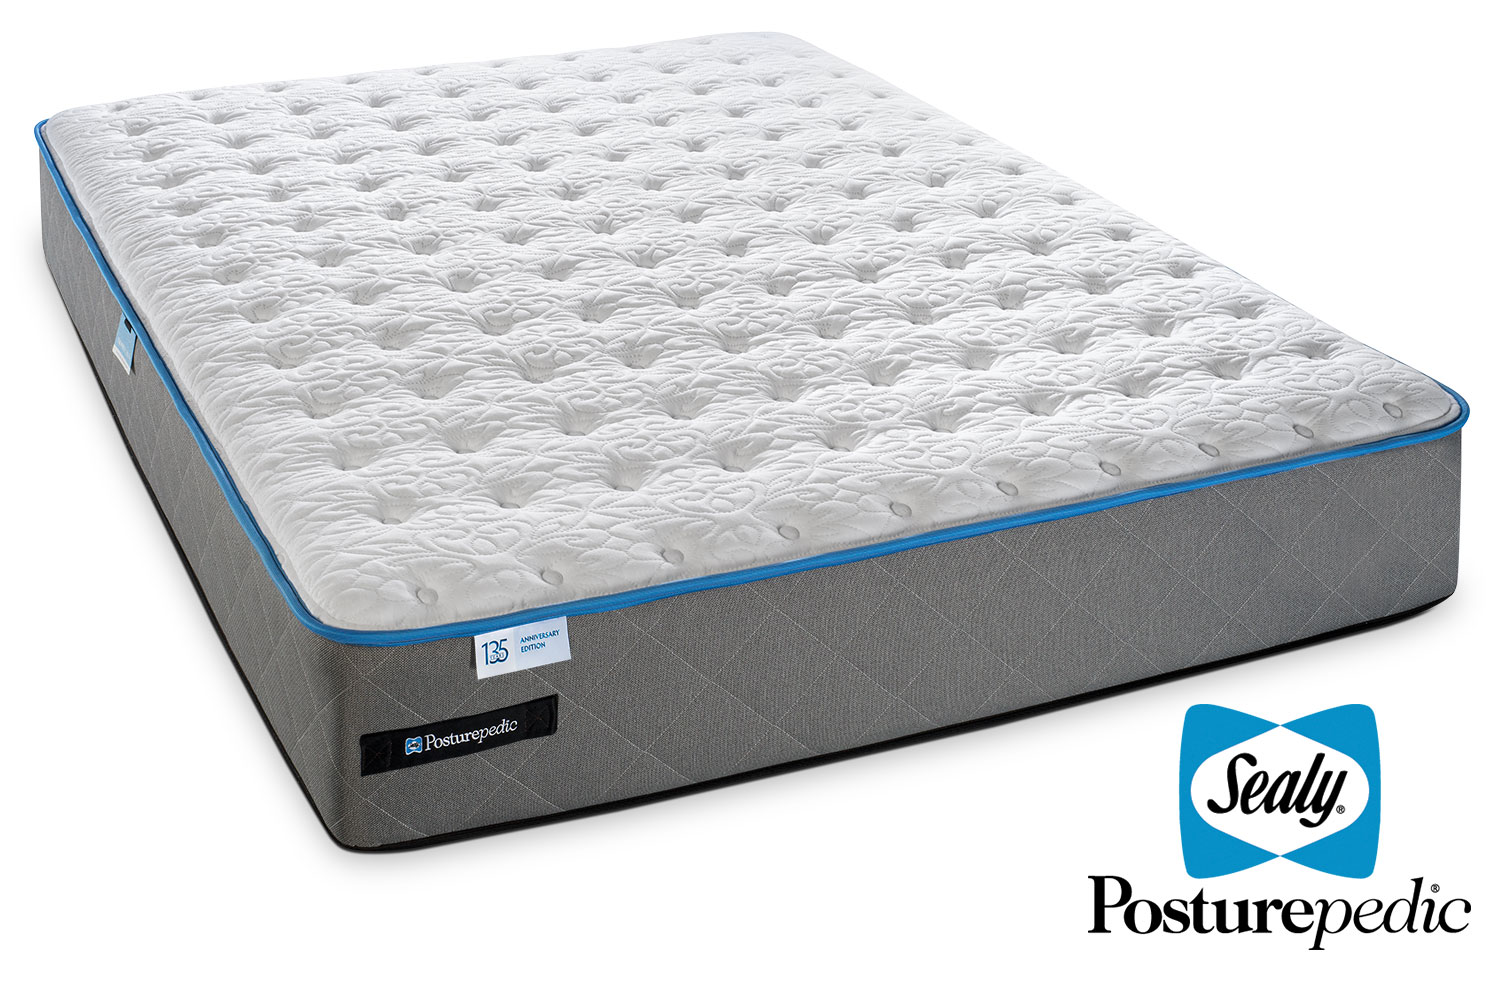 Mattresses and Bedding - Sealy Posturepedic L'Amour Firm King Mattress